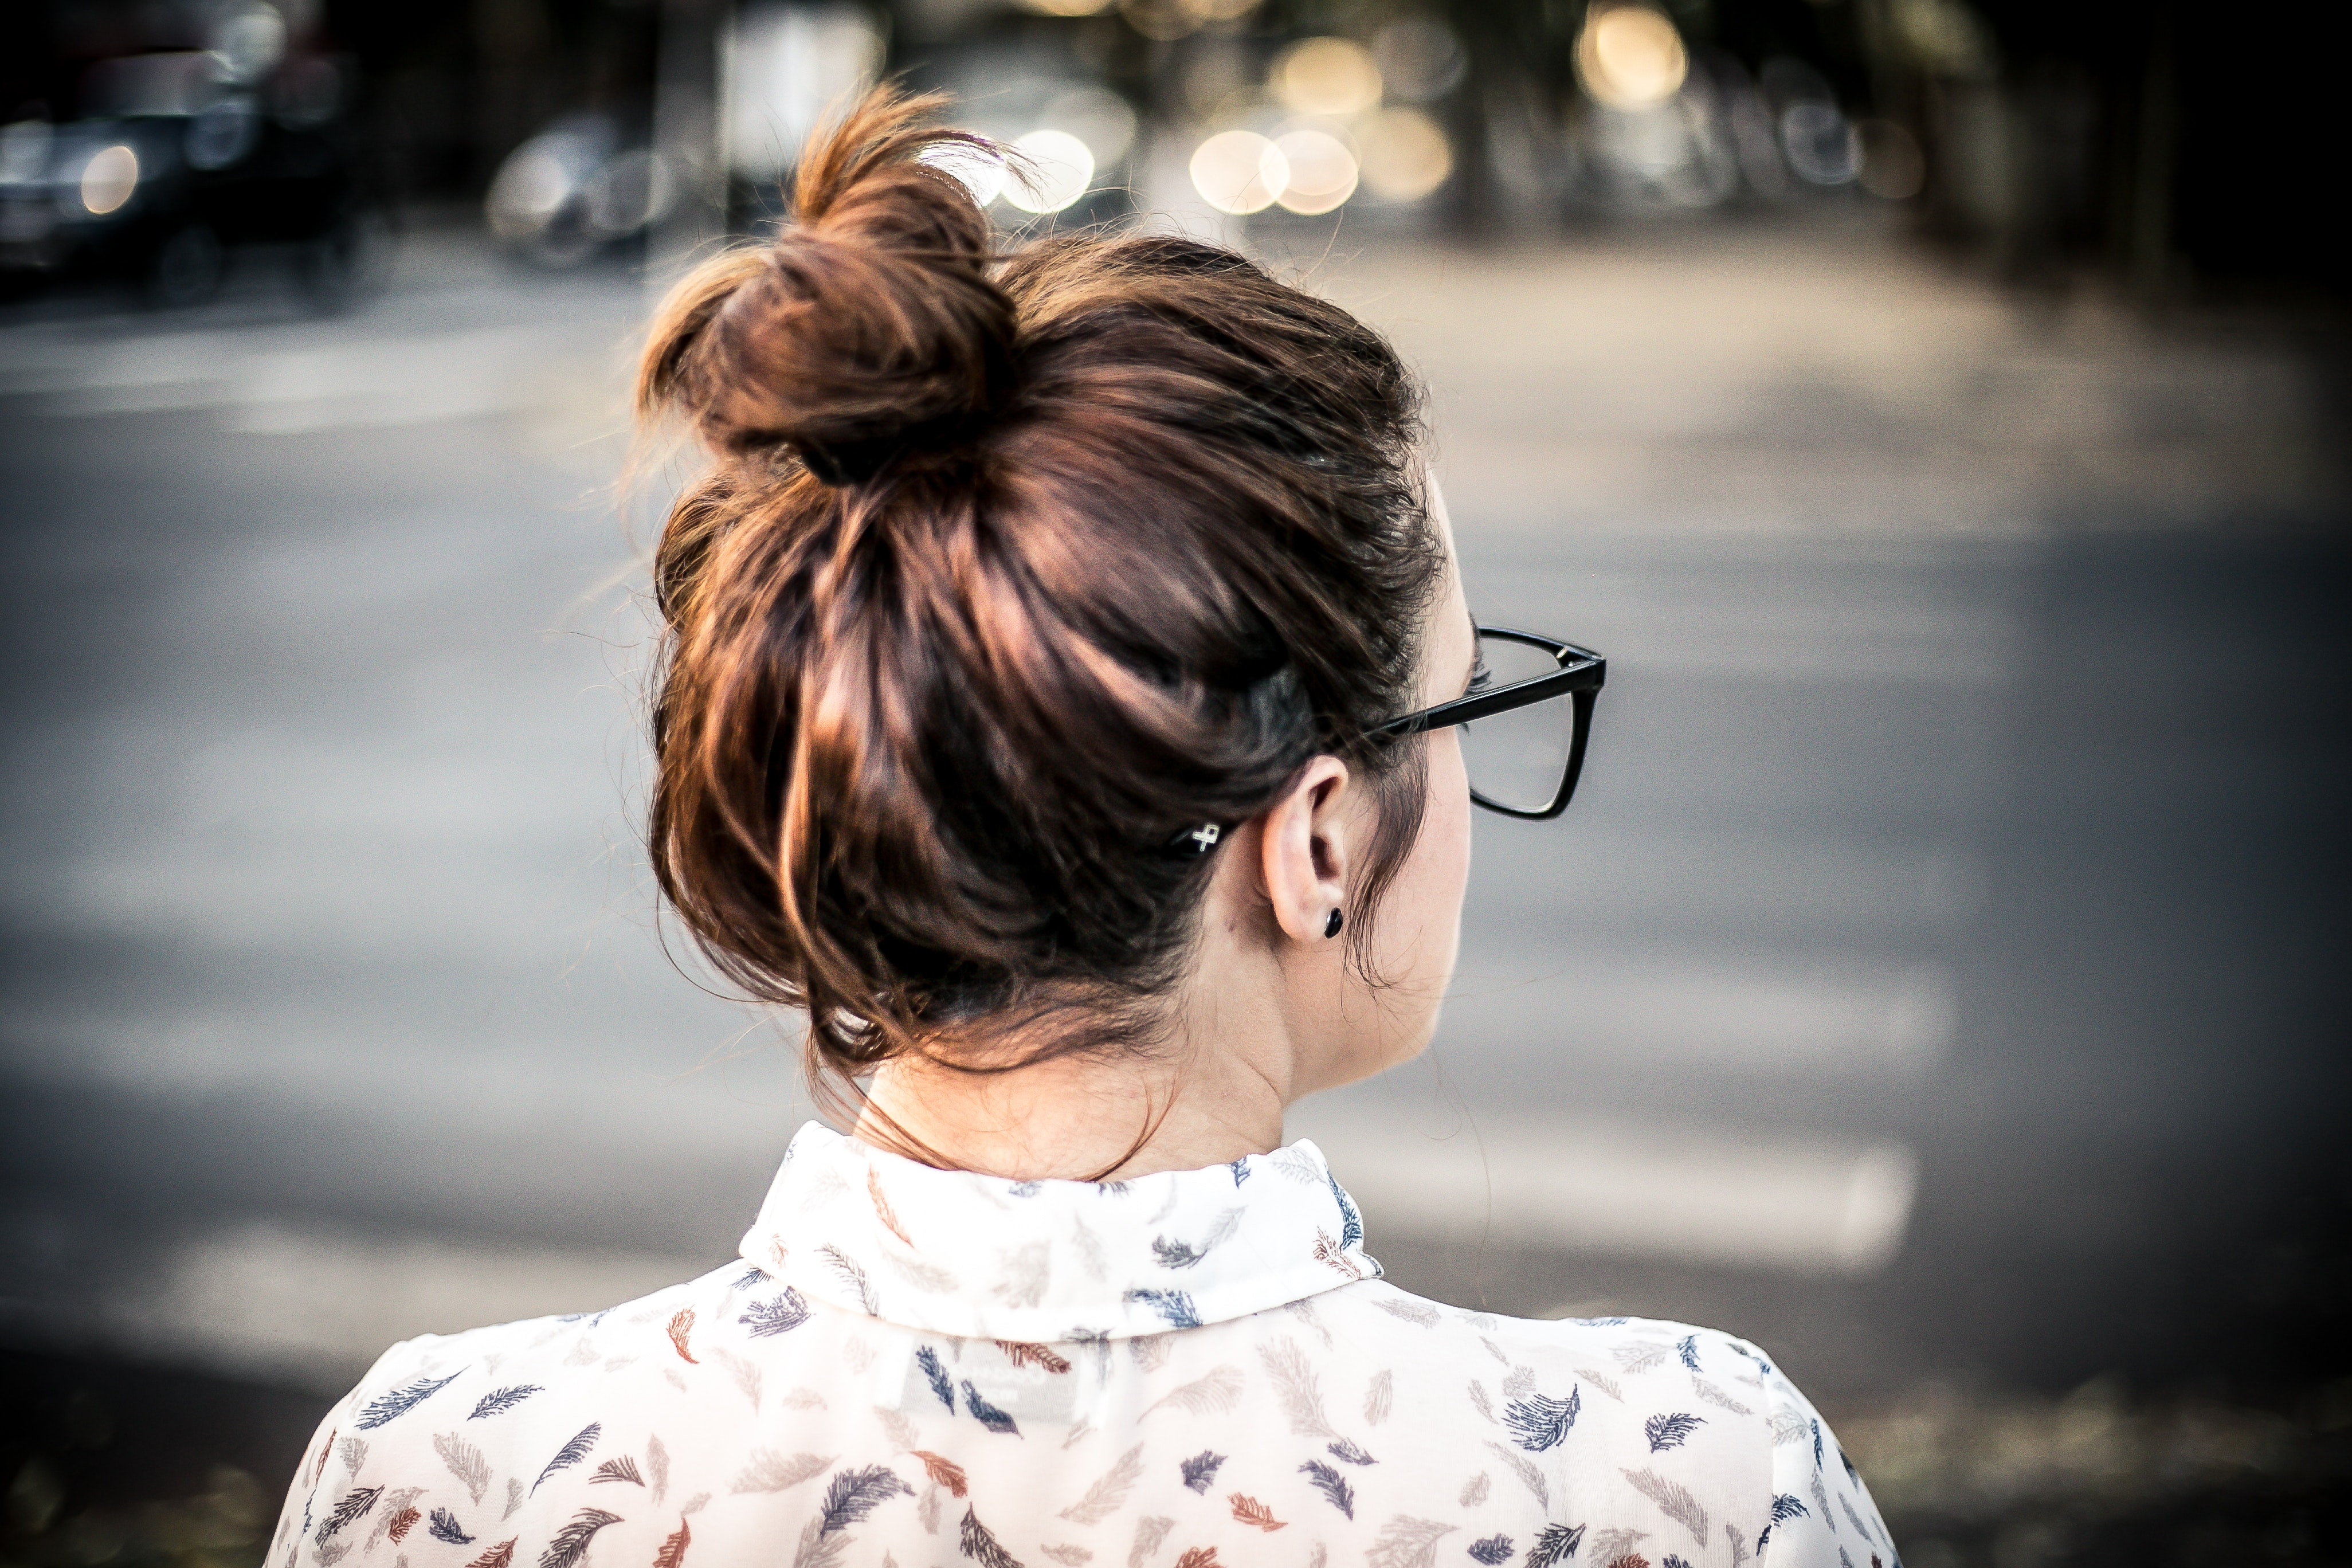 ENTITY promotes three undervalued lazy hairstyles